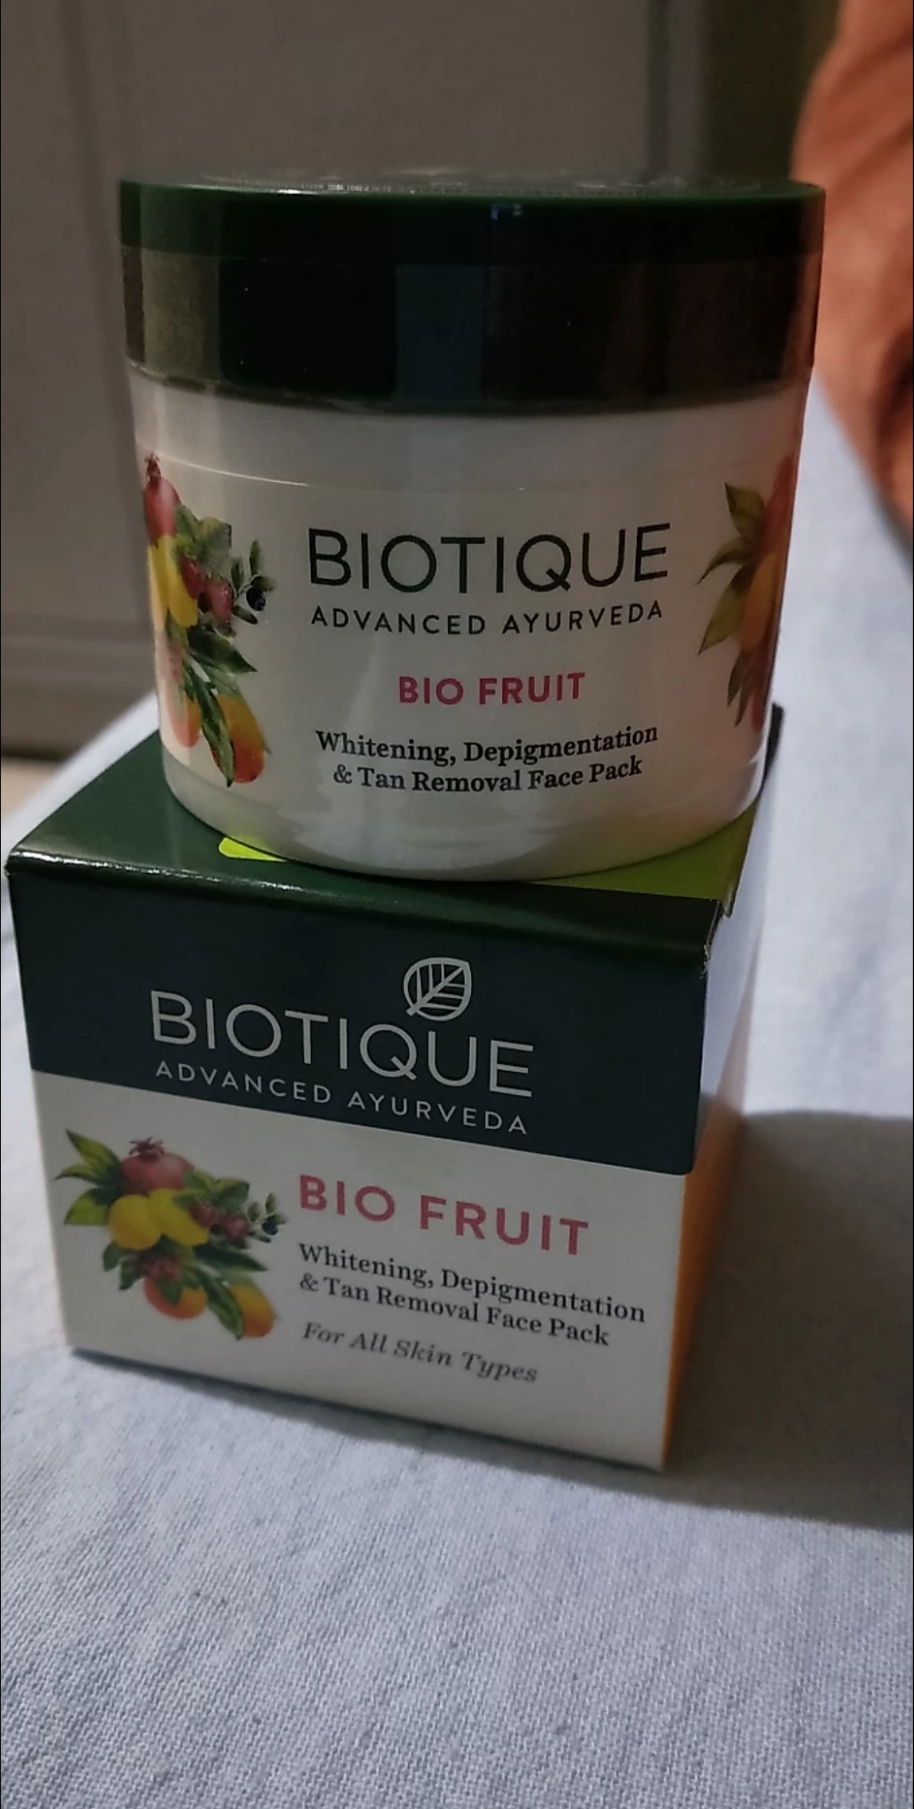 Biotique Bio Fruit Whitening & Depigmentation Face Pack-Biotique Bio Fruit whitening Face pack-By mitshu98